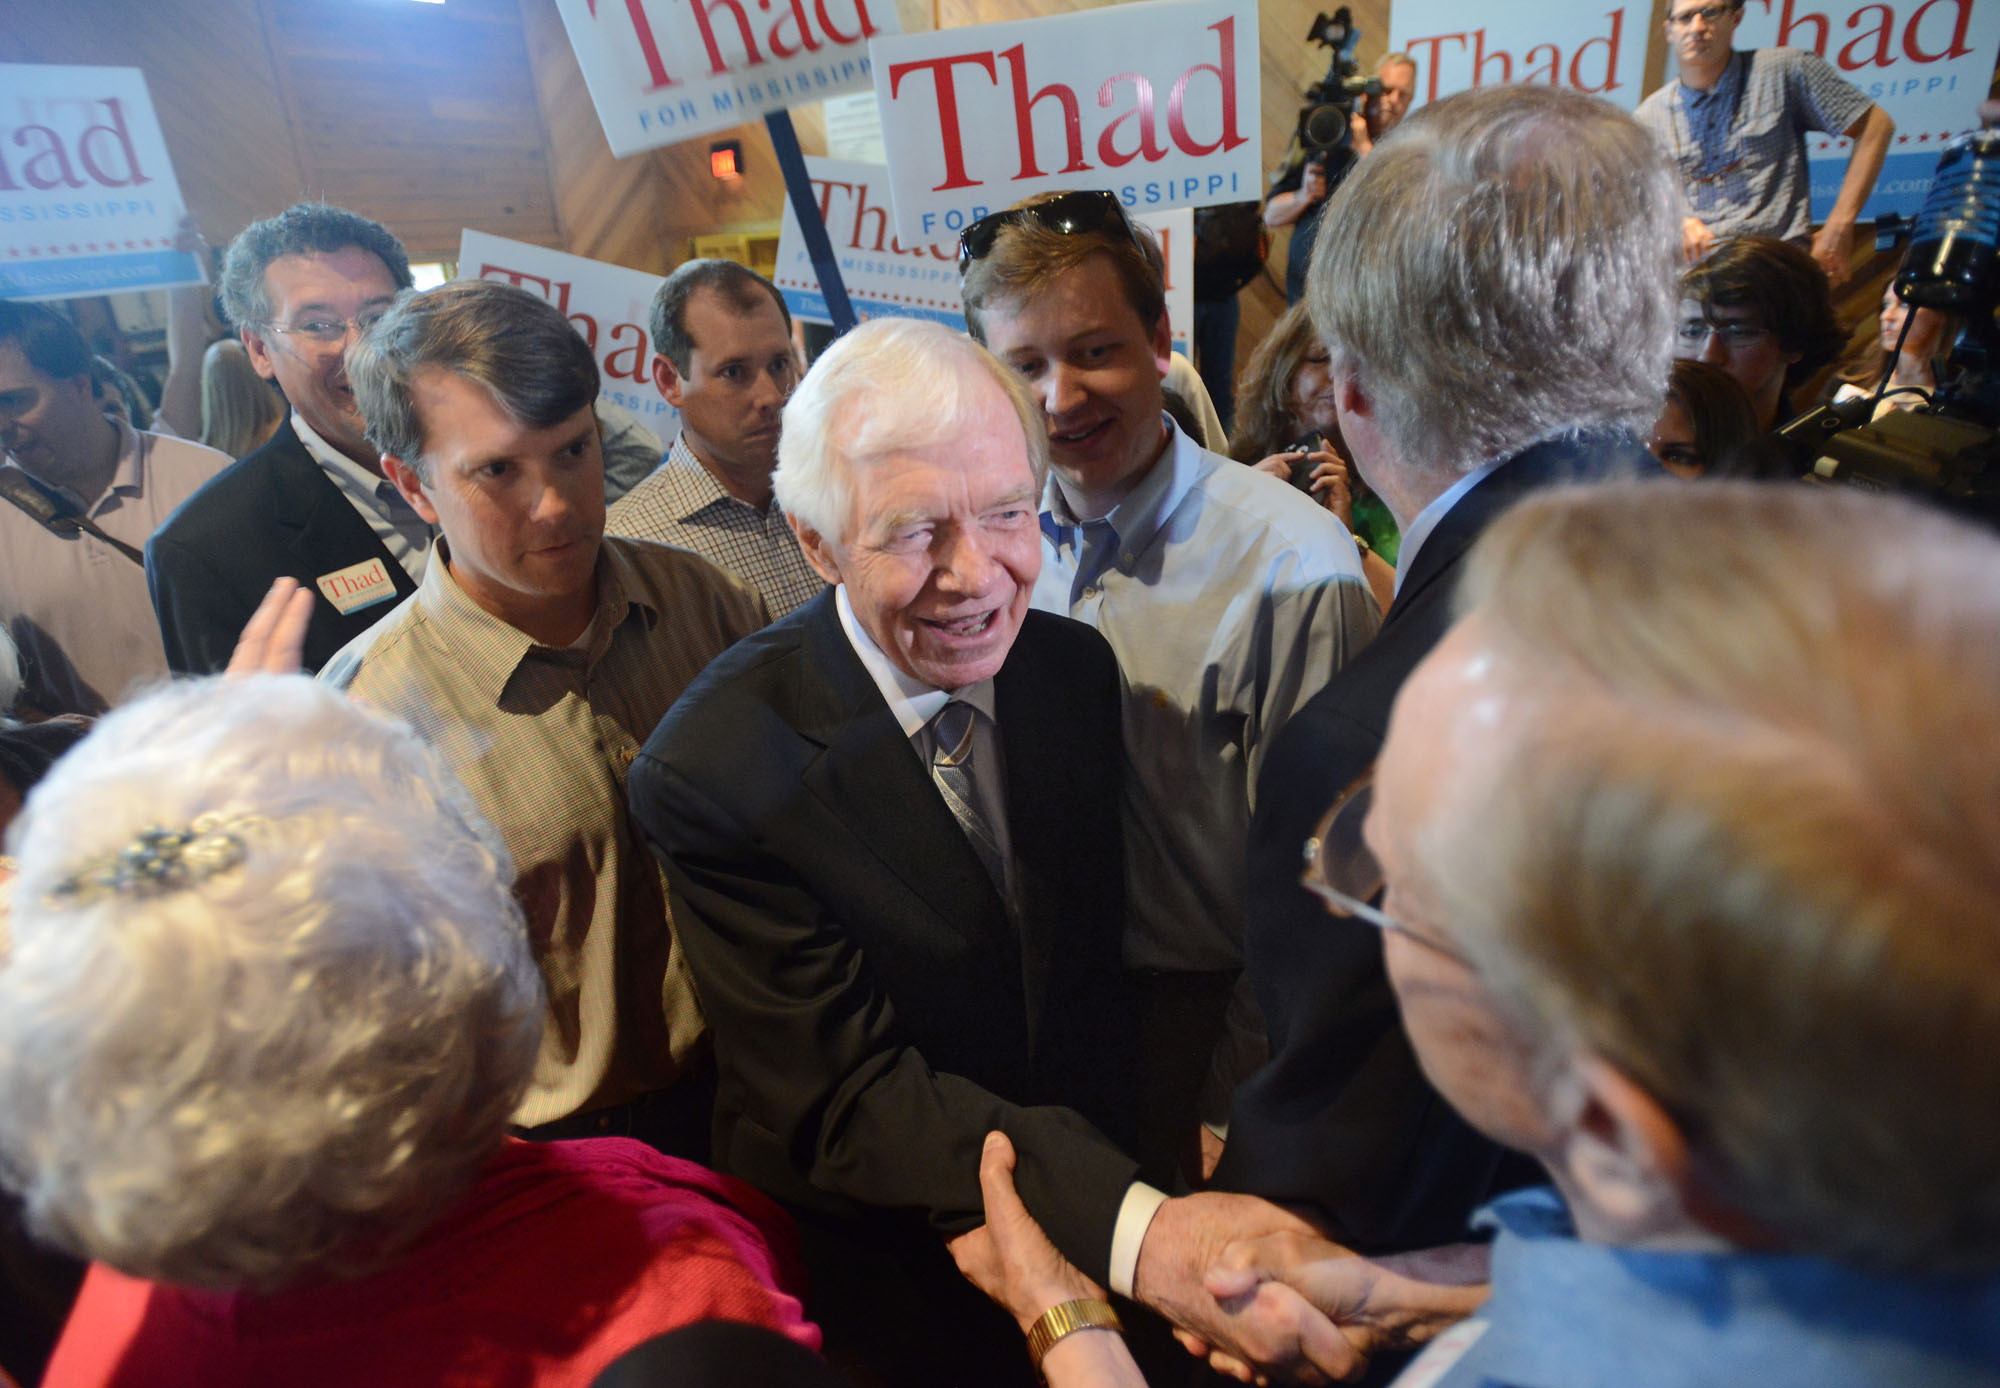 U.S. Sen. Thad Cochran, R-Mississippi, greets supporters at a pre-election day rally at the Mississippi Agriculture and Forestry Museum in Jackson, Miss., on  June 2, 2014.